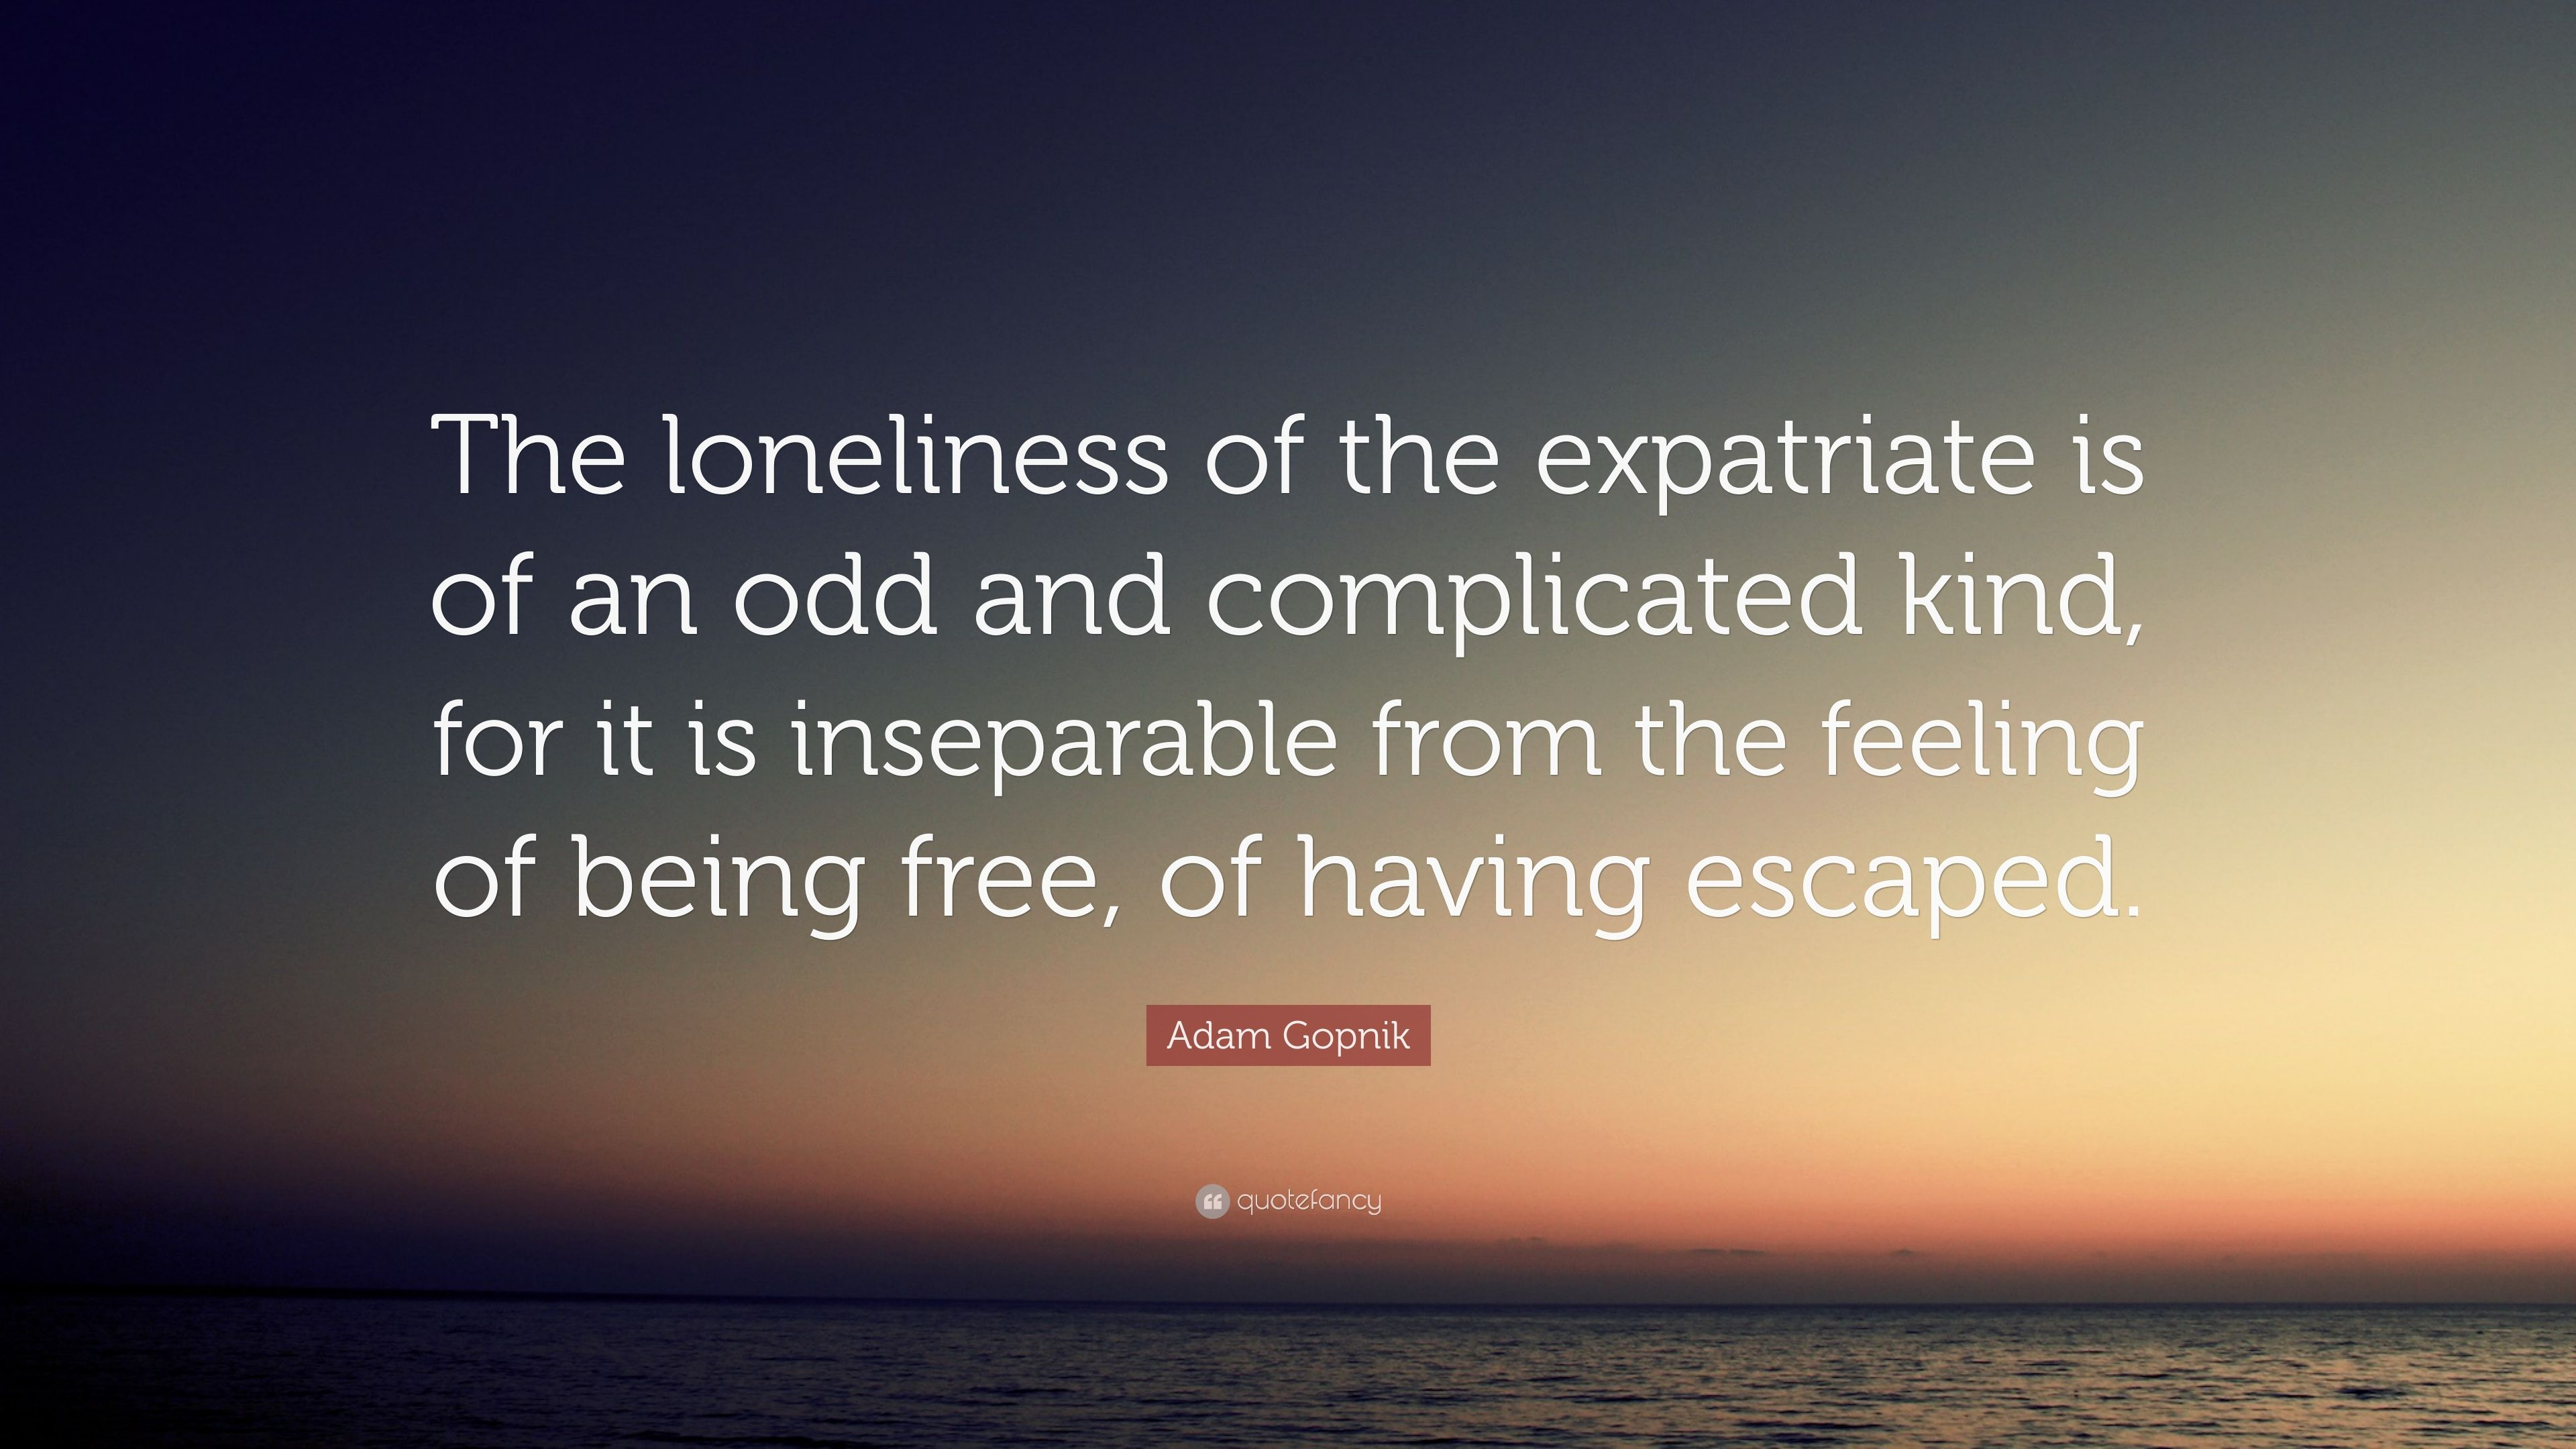 Adam Gopnik Quote The Loneliness Of The Expatriate Is Of An Odd